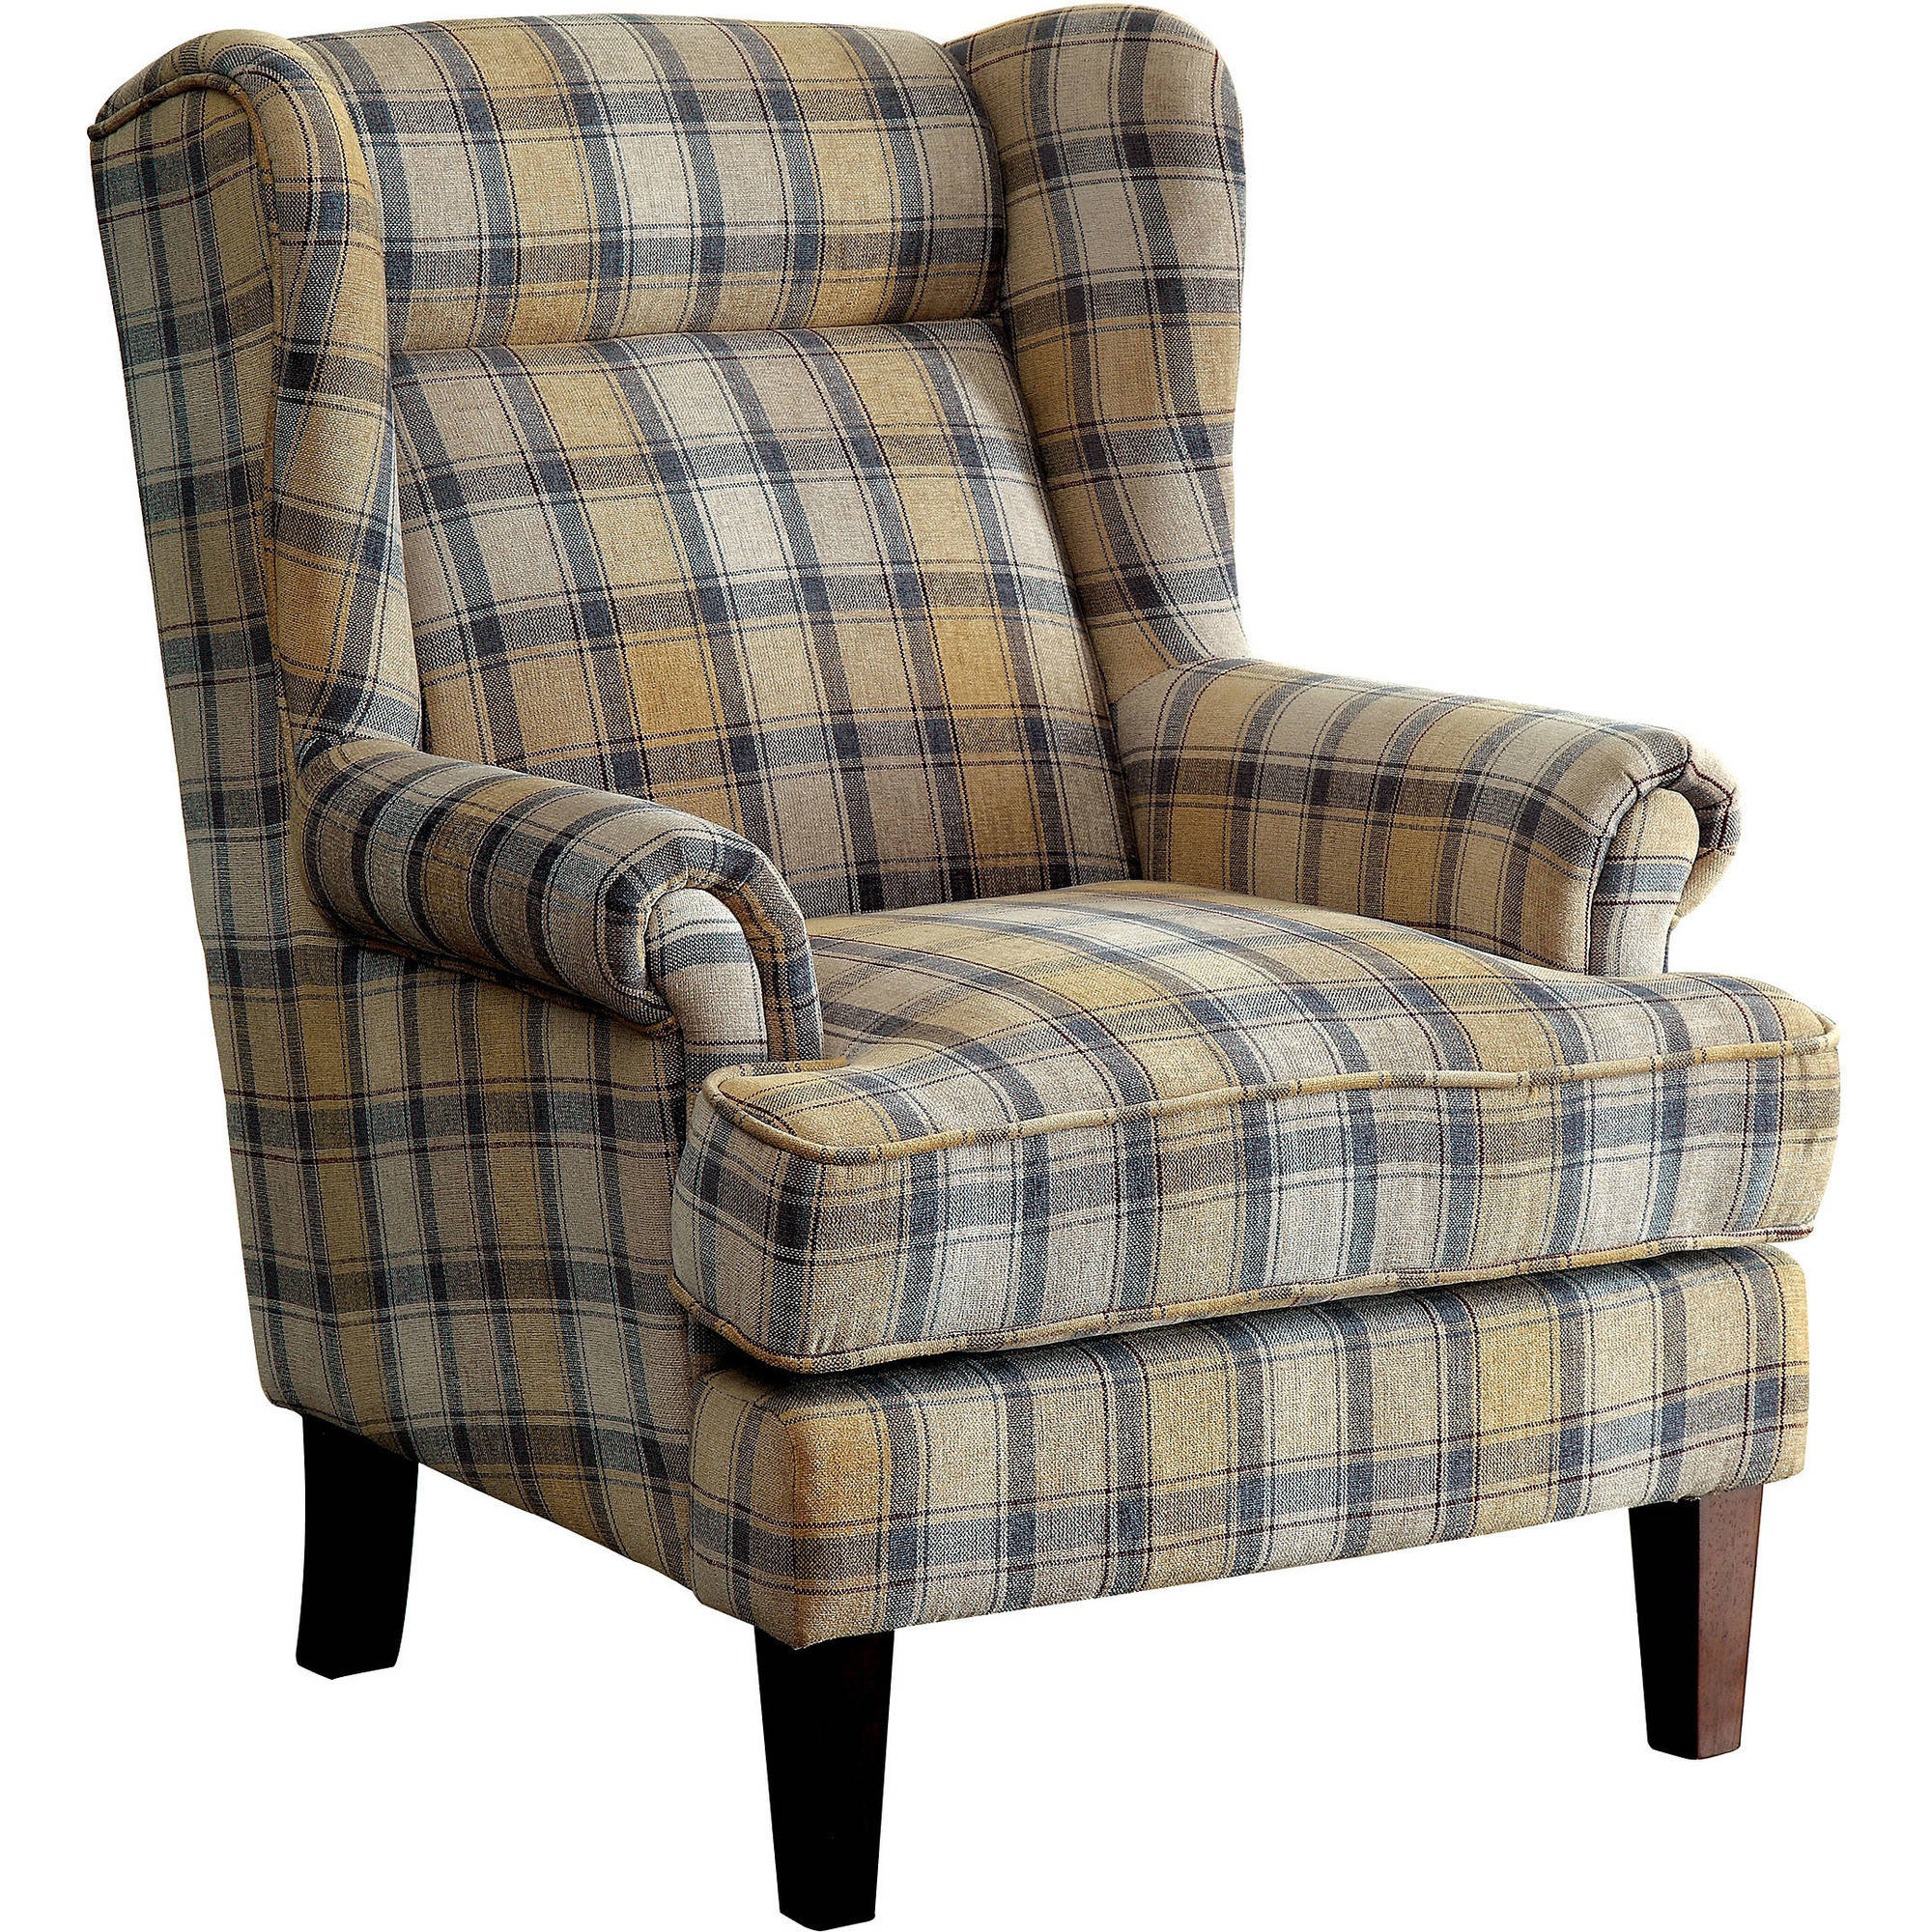 Furniture of America Loida Traditional Plaid Accent Chair